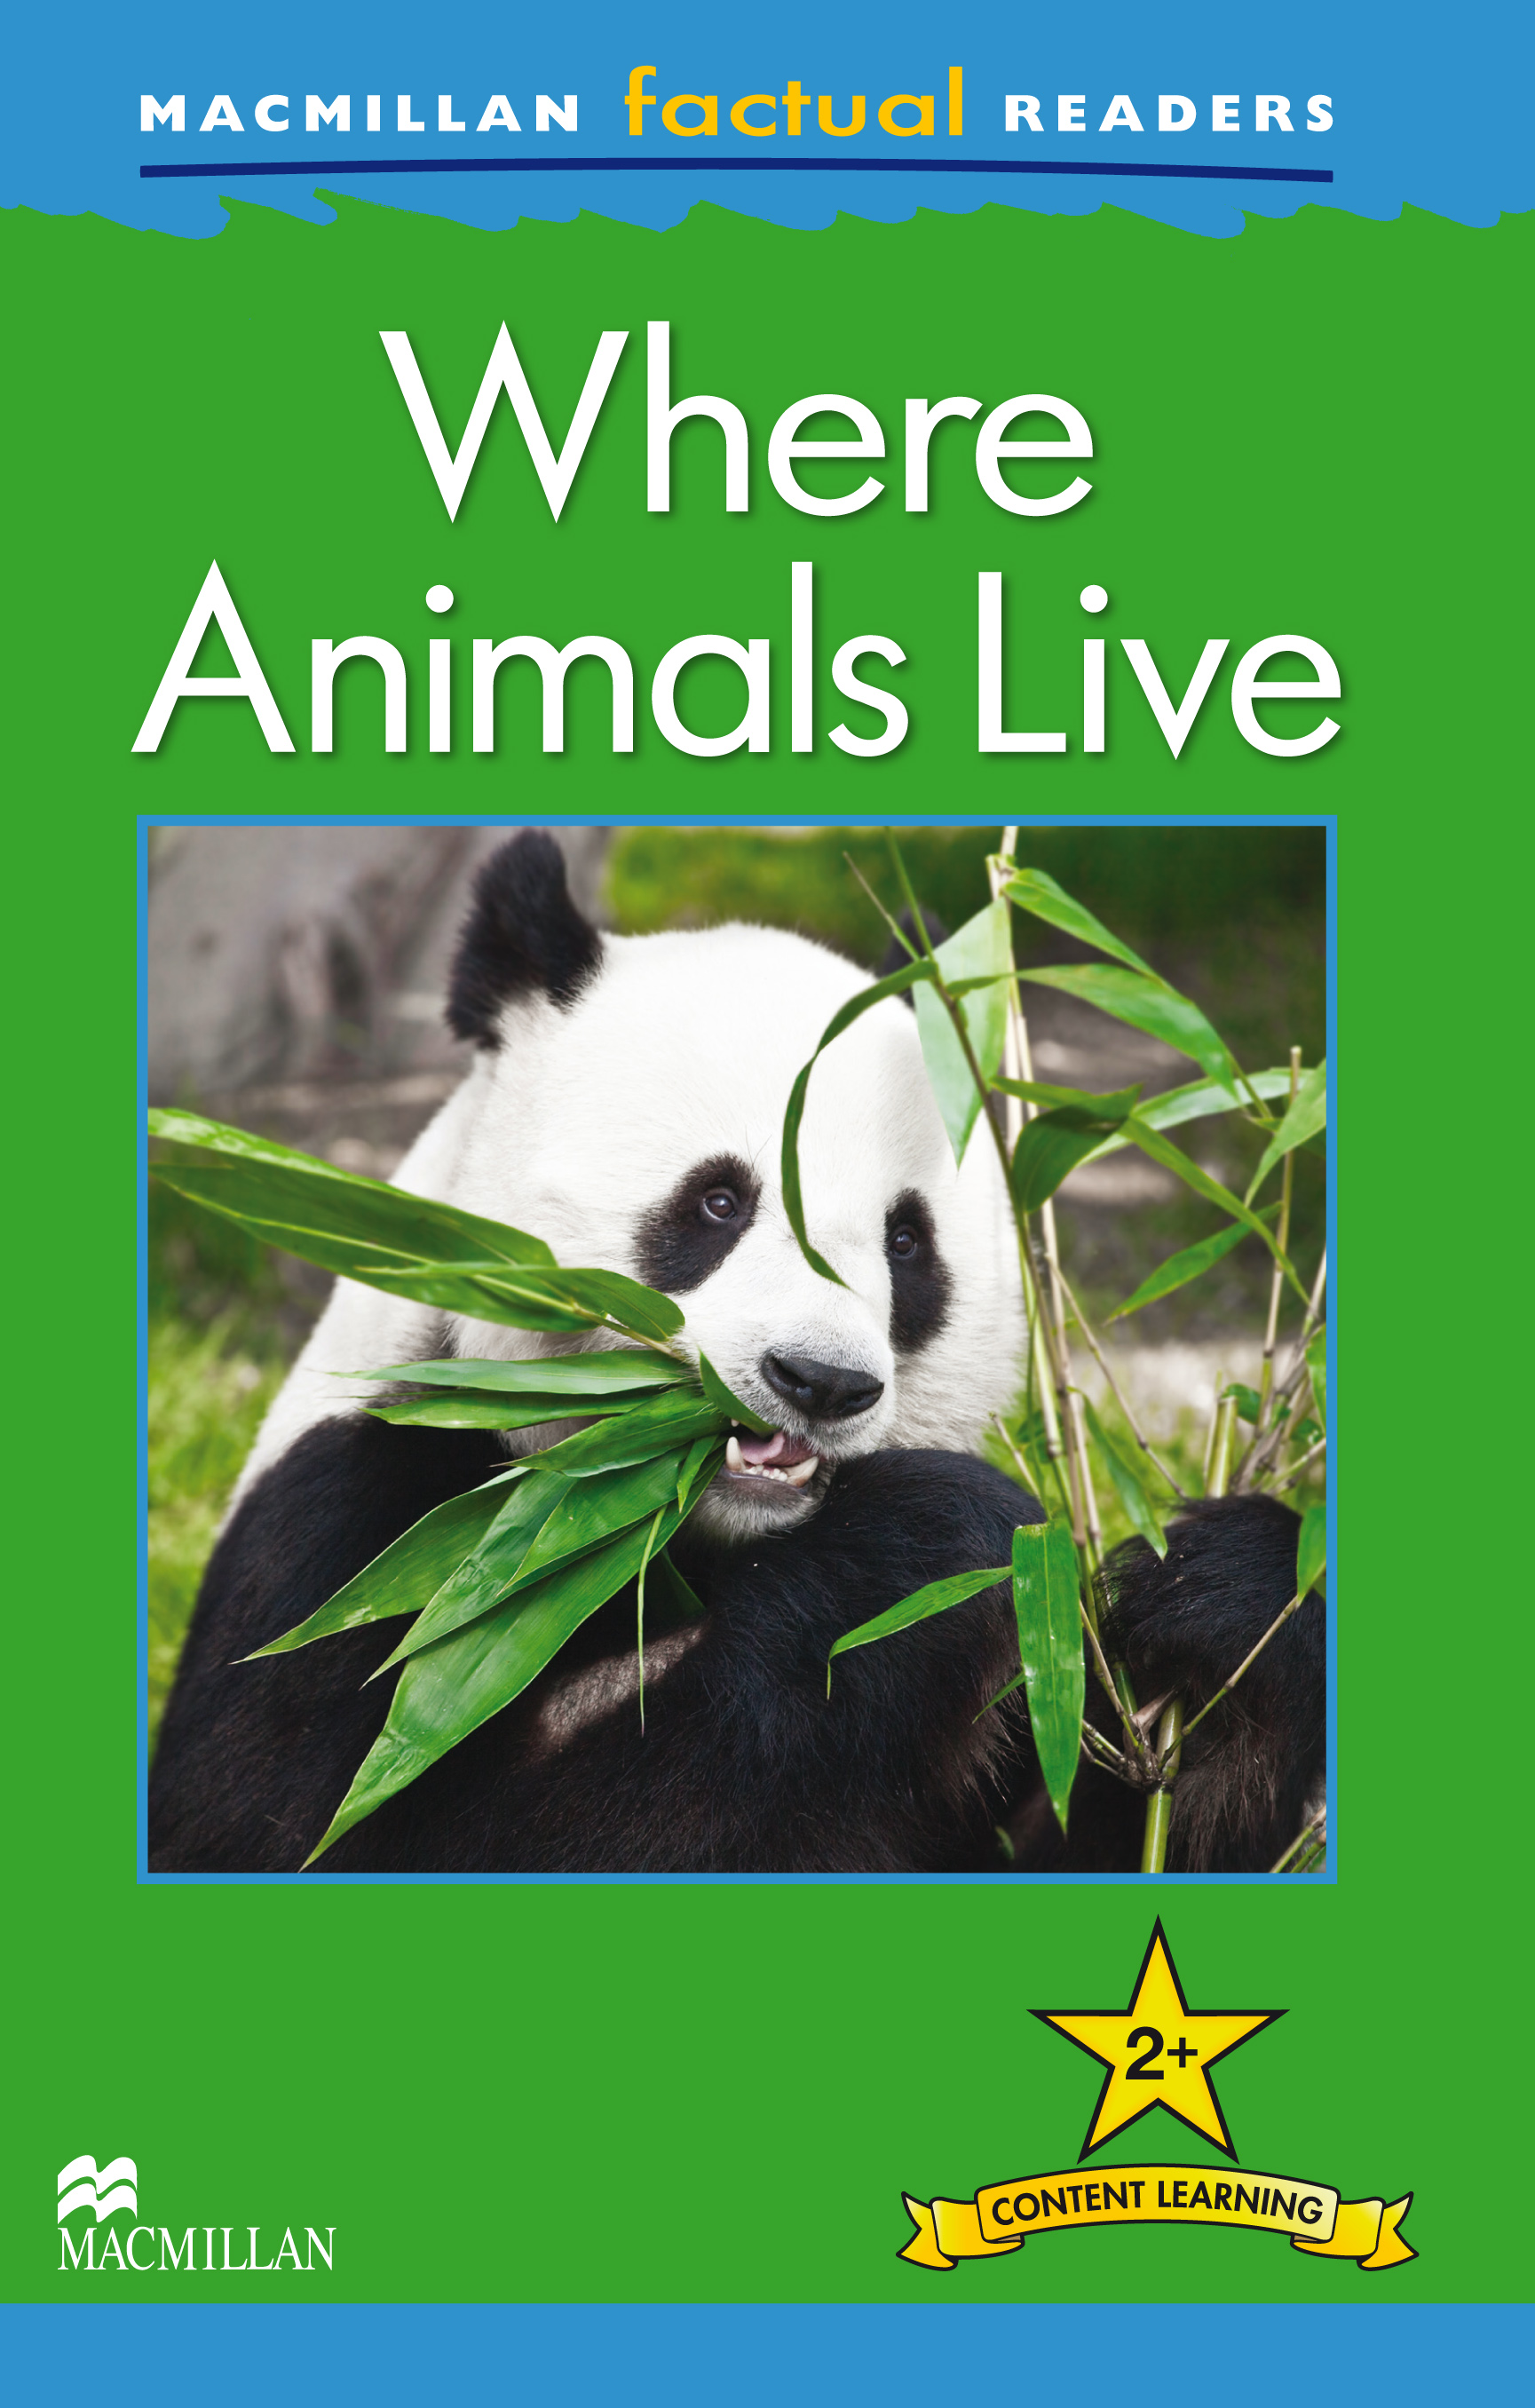 Macmillan Factual Readers: Where Animals Live